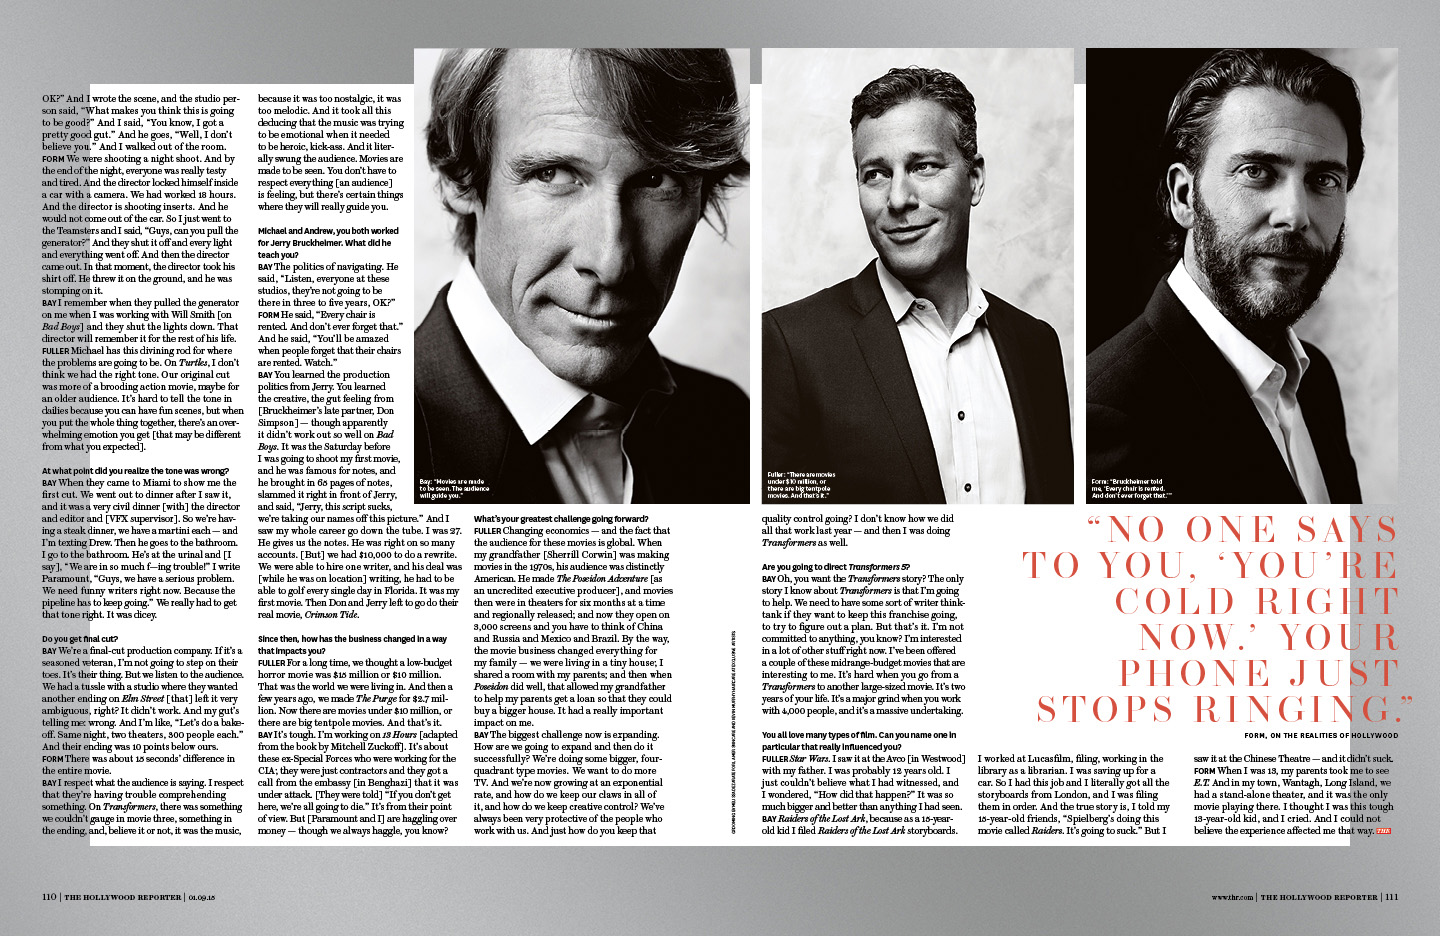 Producers of the Year / The Hollywood Reporter / 1.9.15 / kelsey stefanson / art direction + graphic design / yeskelsey.com